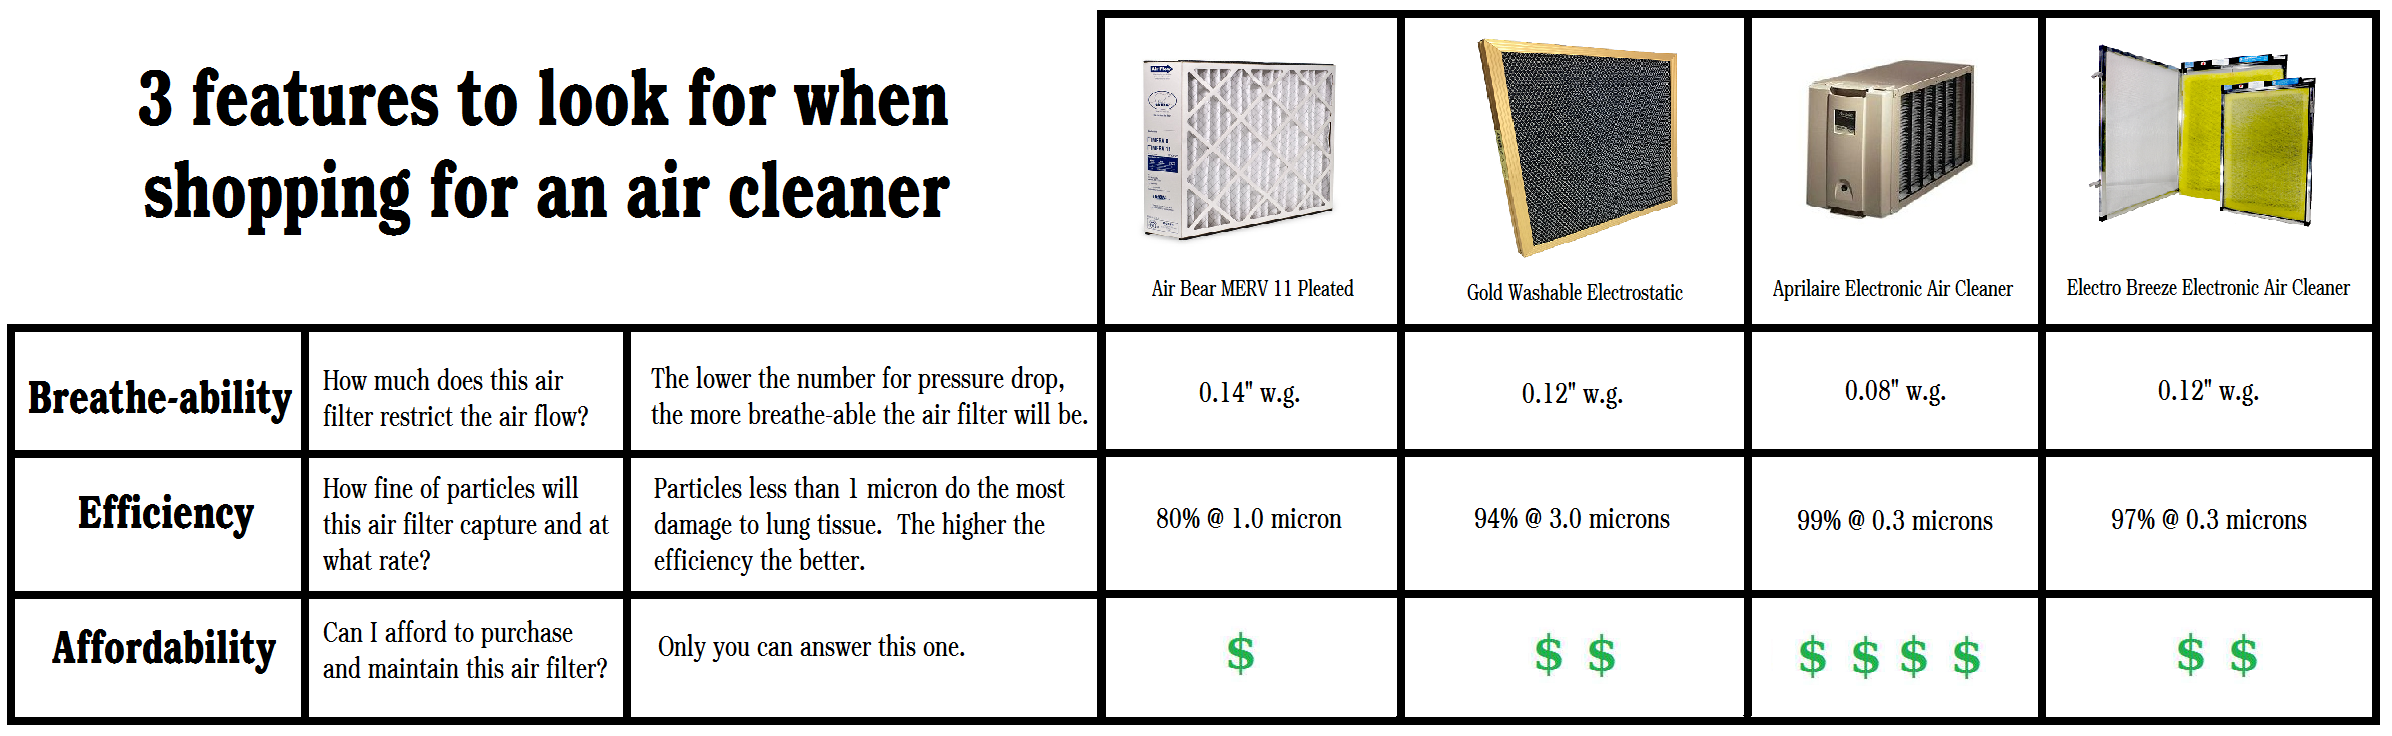 Clean Air Direct Pads compatible with the SolaceAir P1000 Filter 16 X 24 W 4 Changes